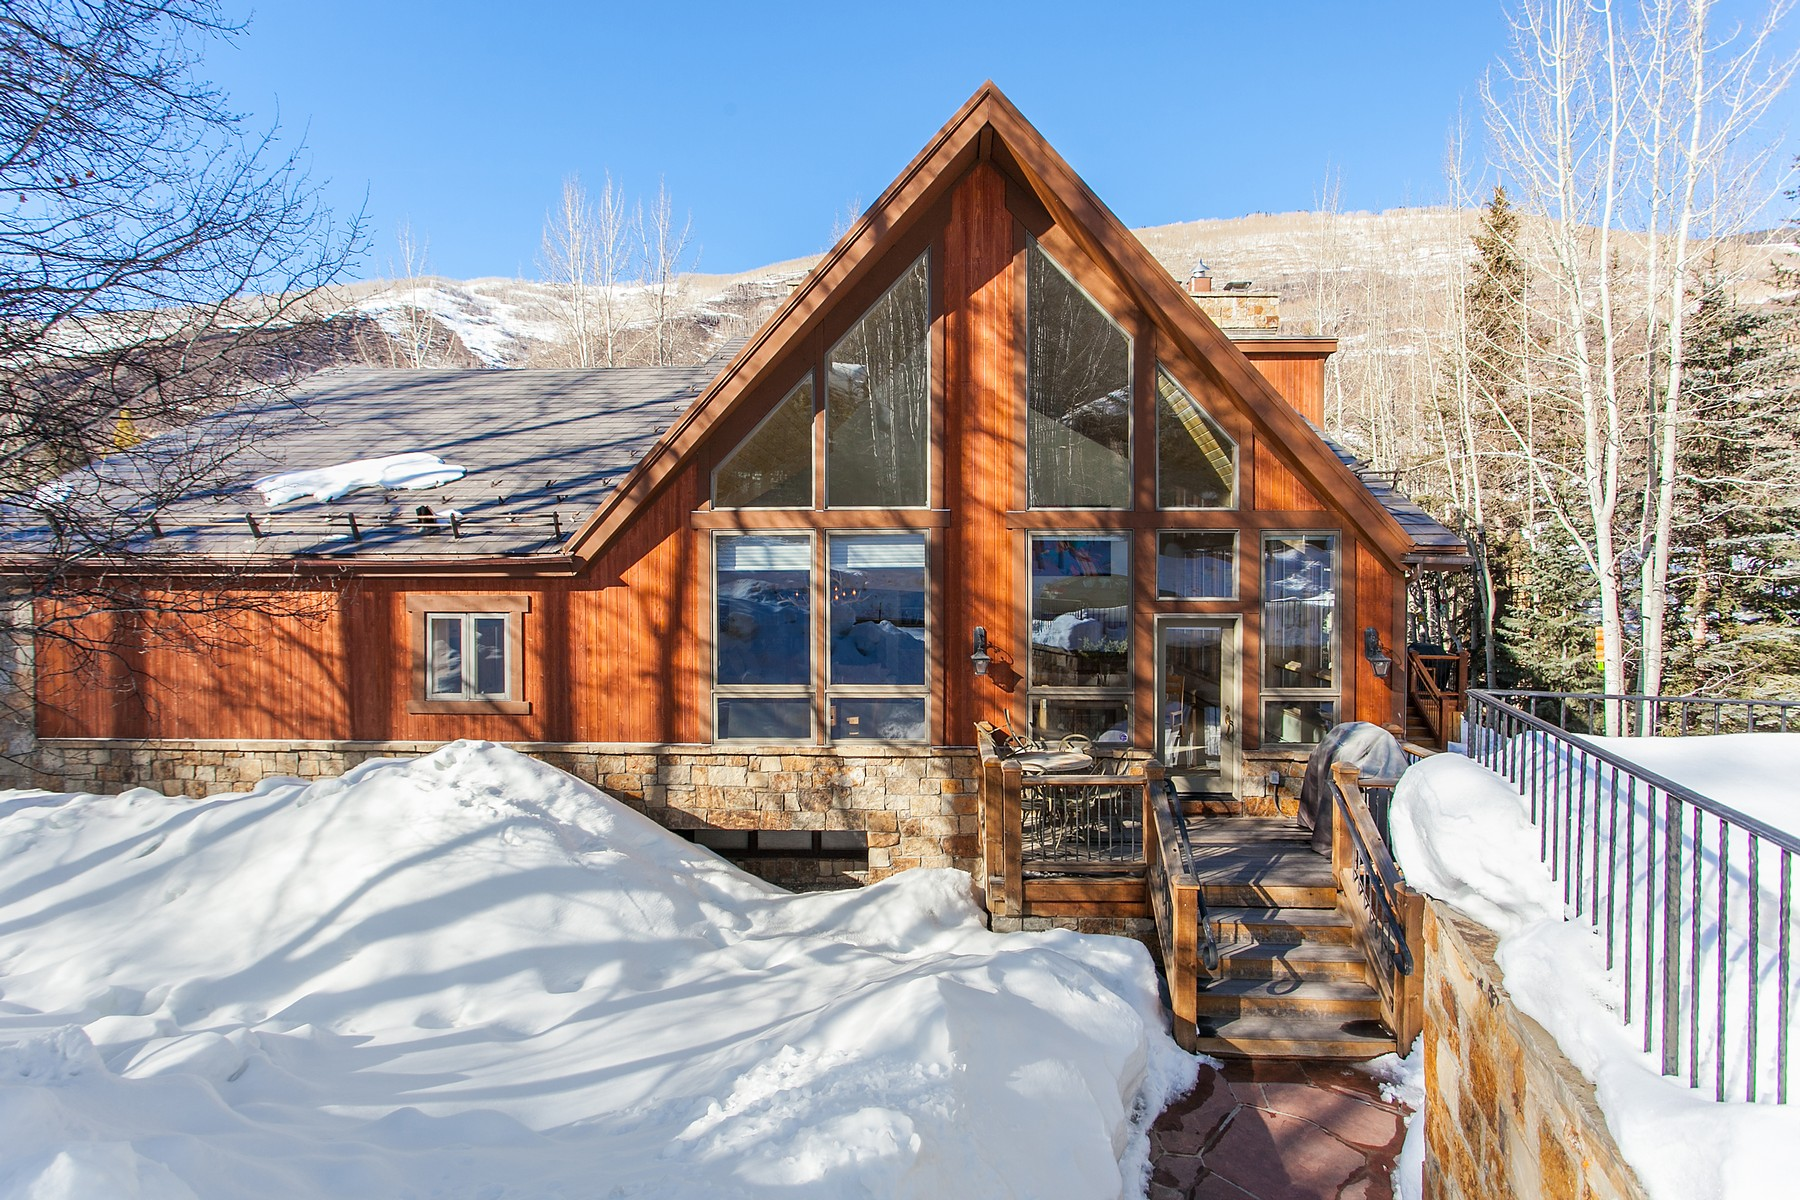 Single Family Home for Sale at 1517 Vail Valley Drive 1517 Vail Valley Dr 1 Vail, Colorado 81657 United States